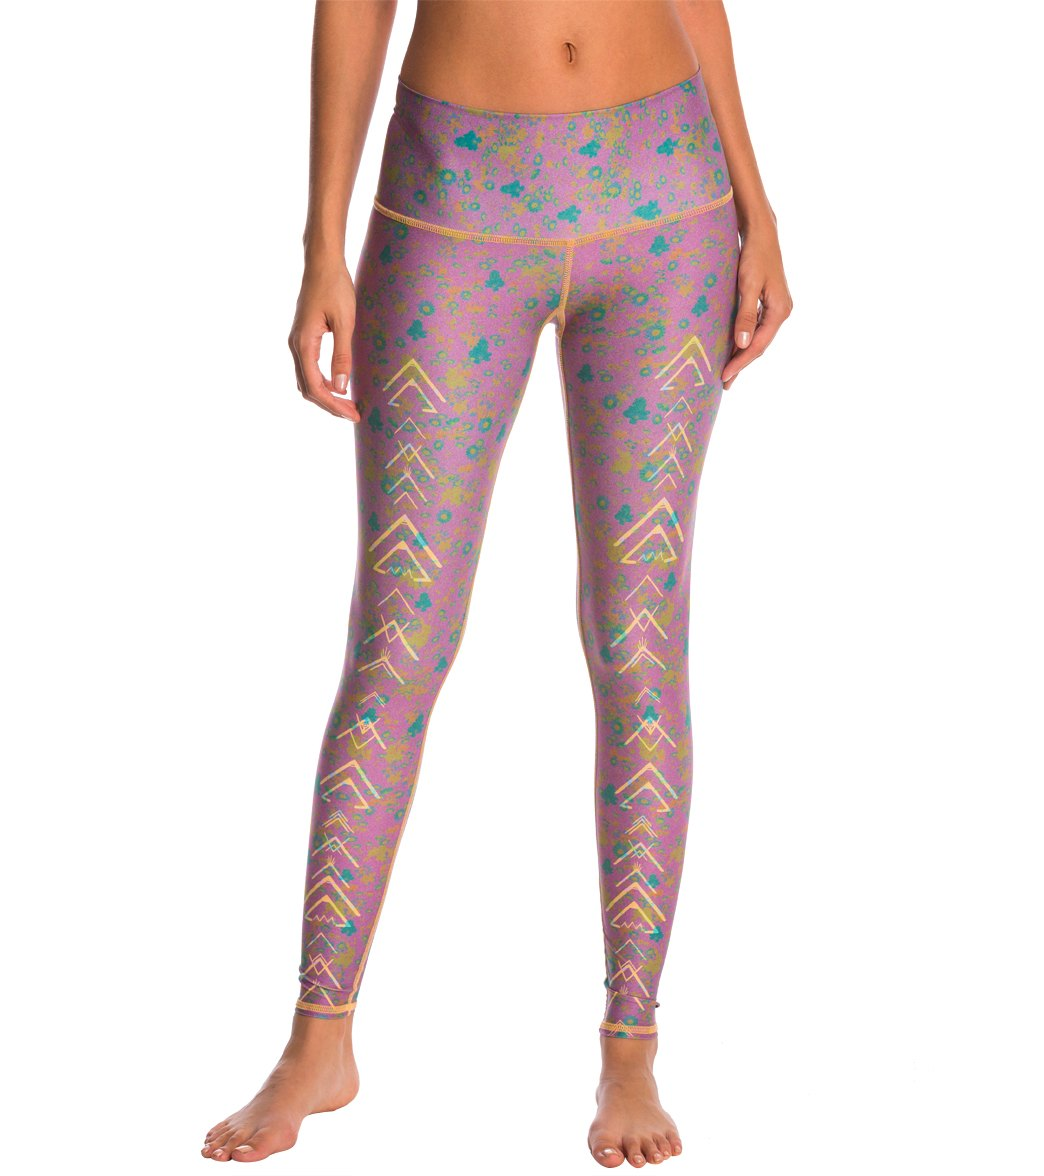 Puppy On Meadow Womens Printed Yoga Pants High Waisted Workout Leggings